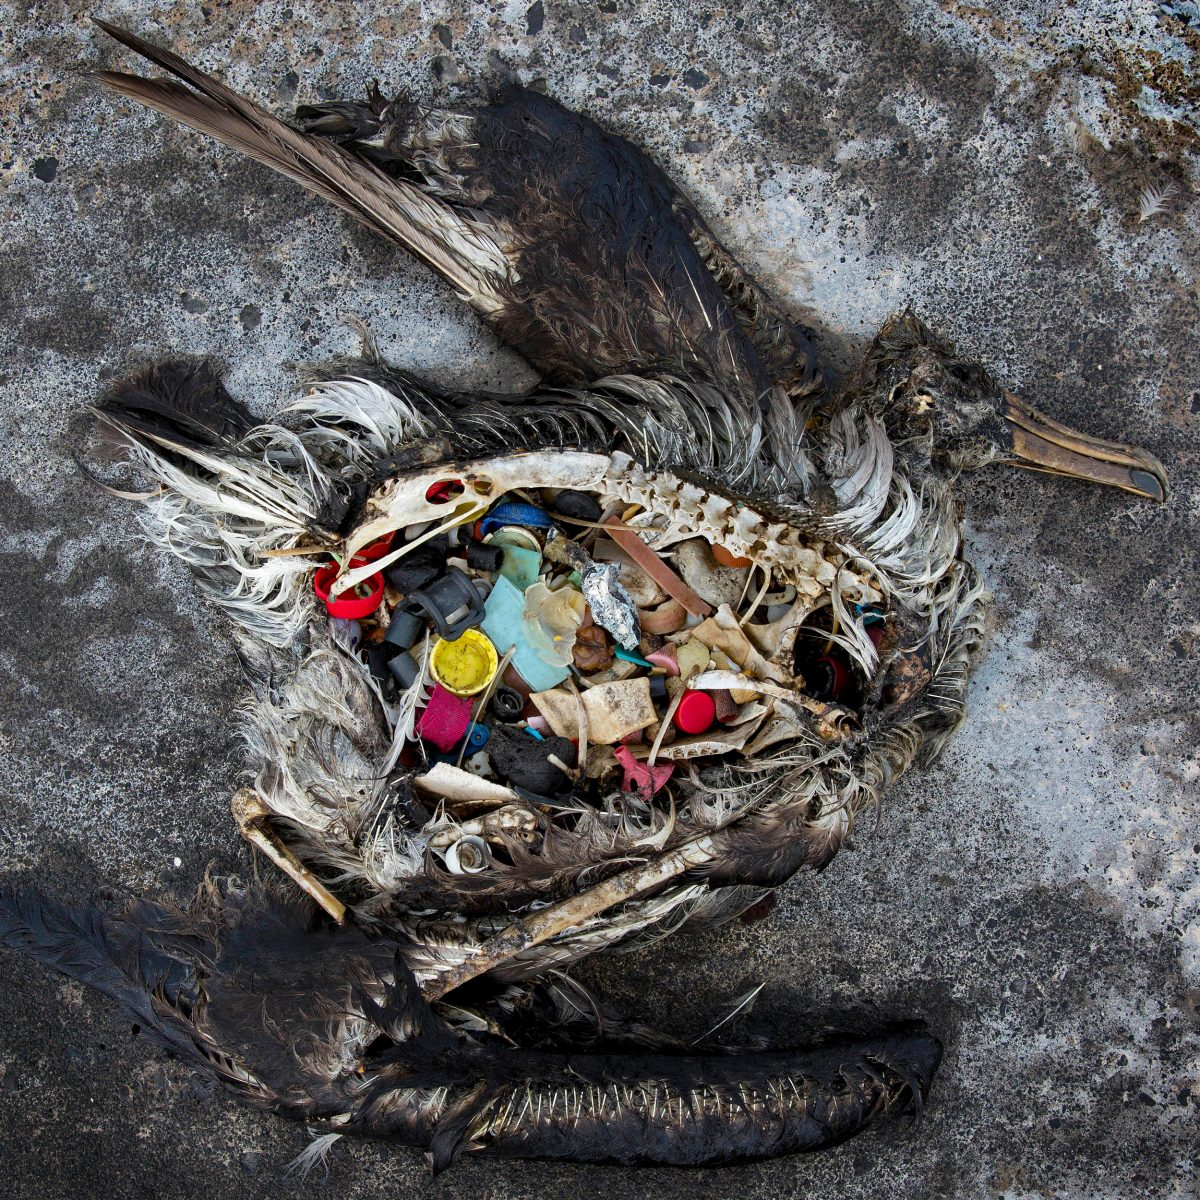 A dead black-footed albatross chick with plastics in its stomach